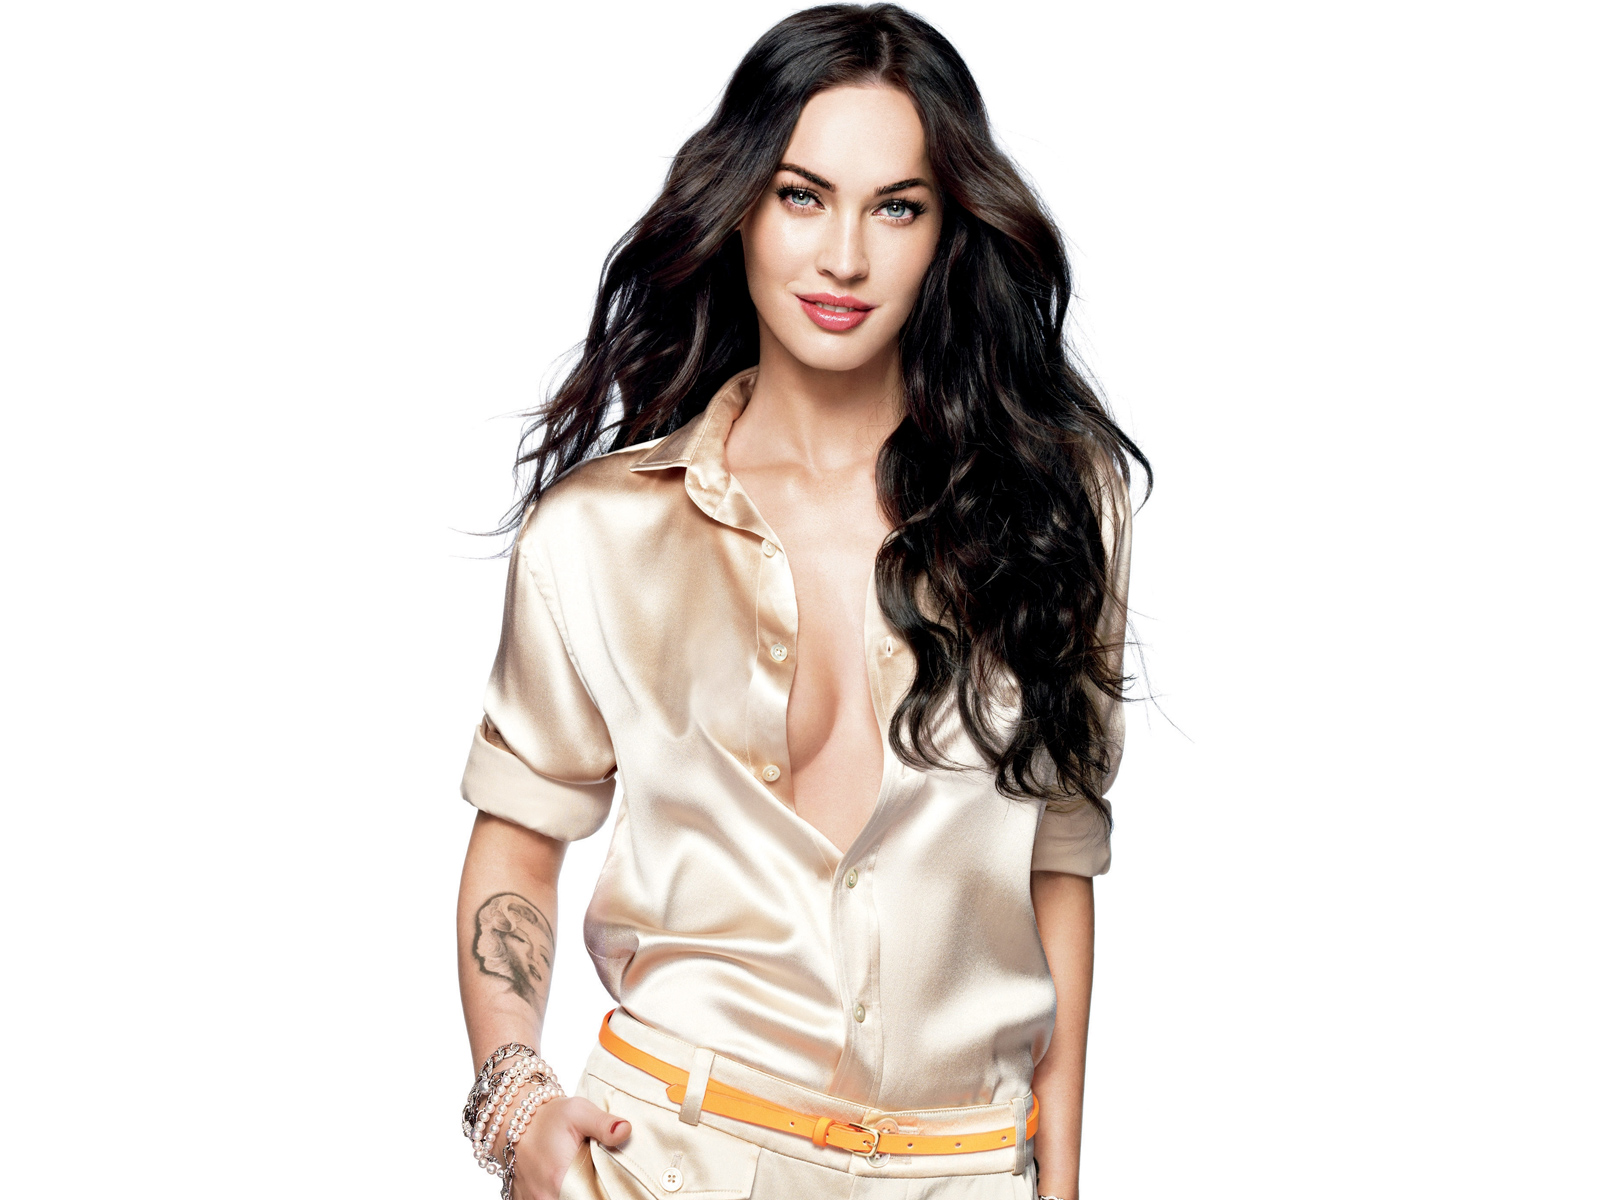 2011 Megan Fox 472.21 Kb